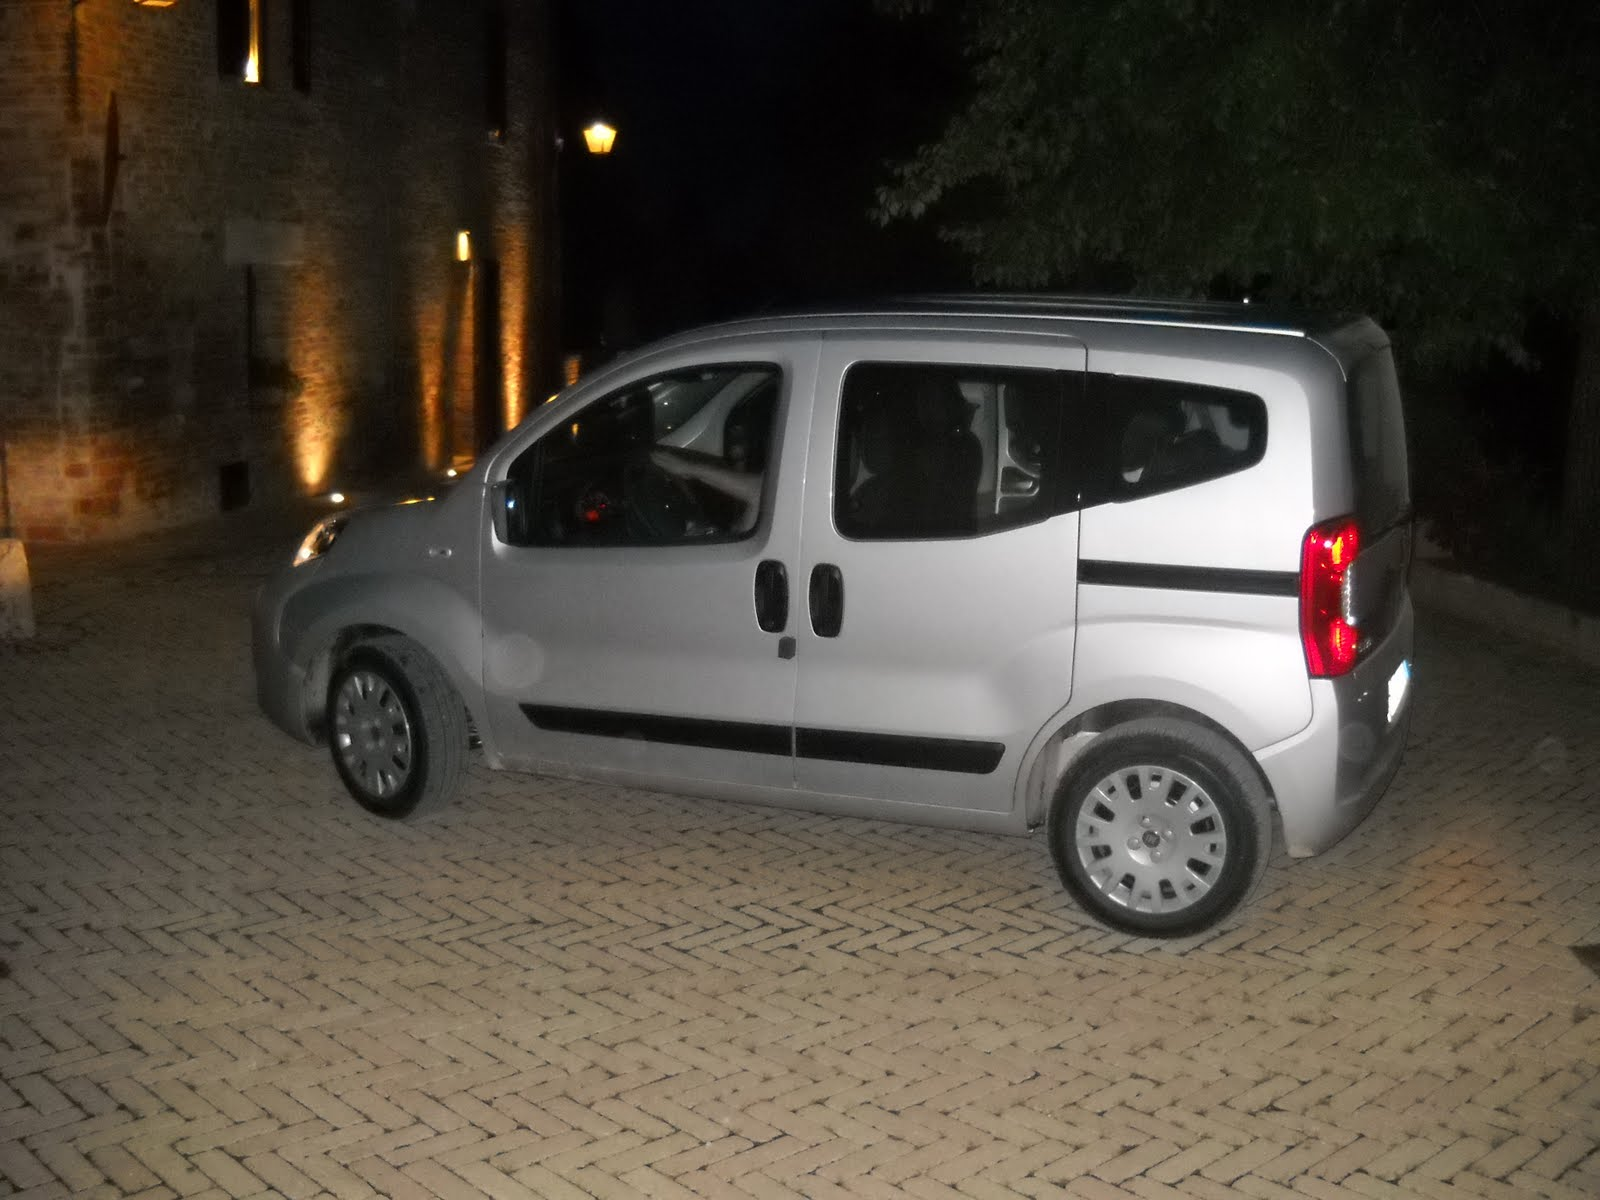 cute car the Fiat Qubo.